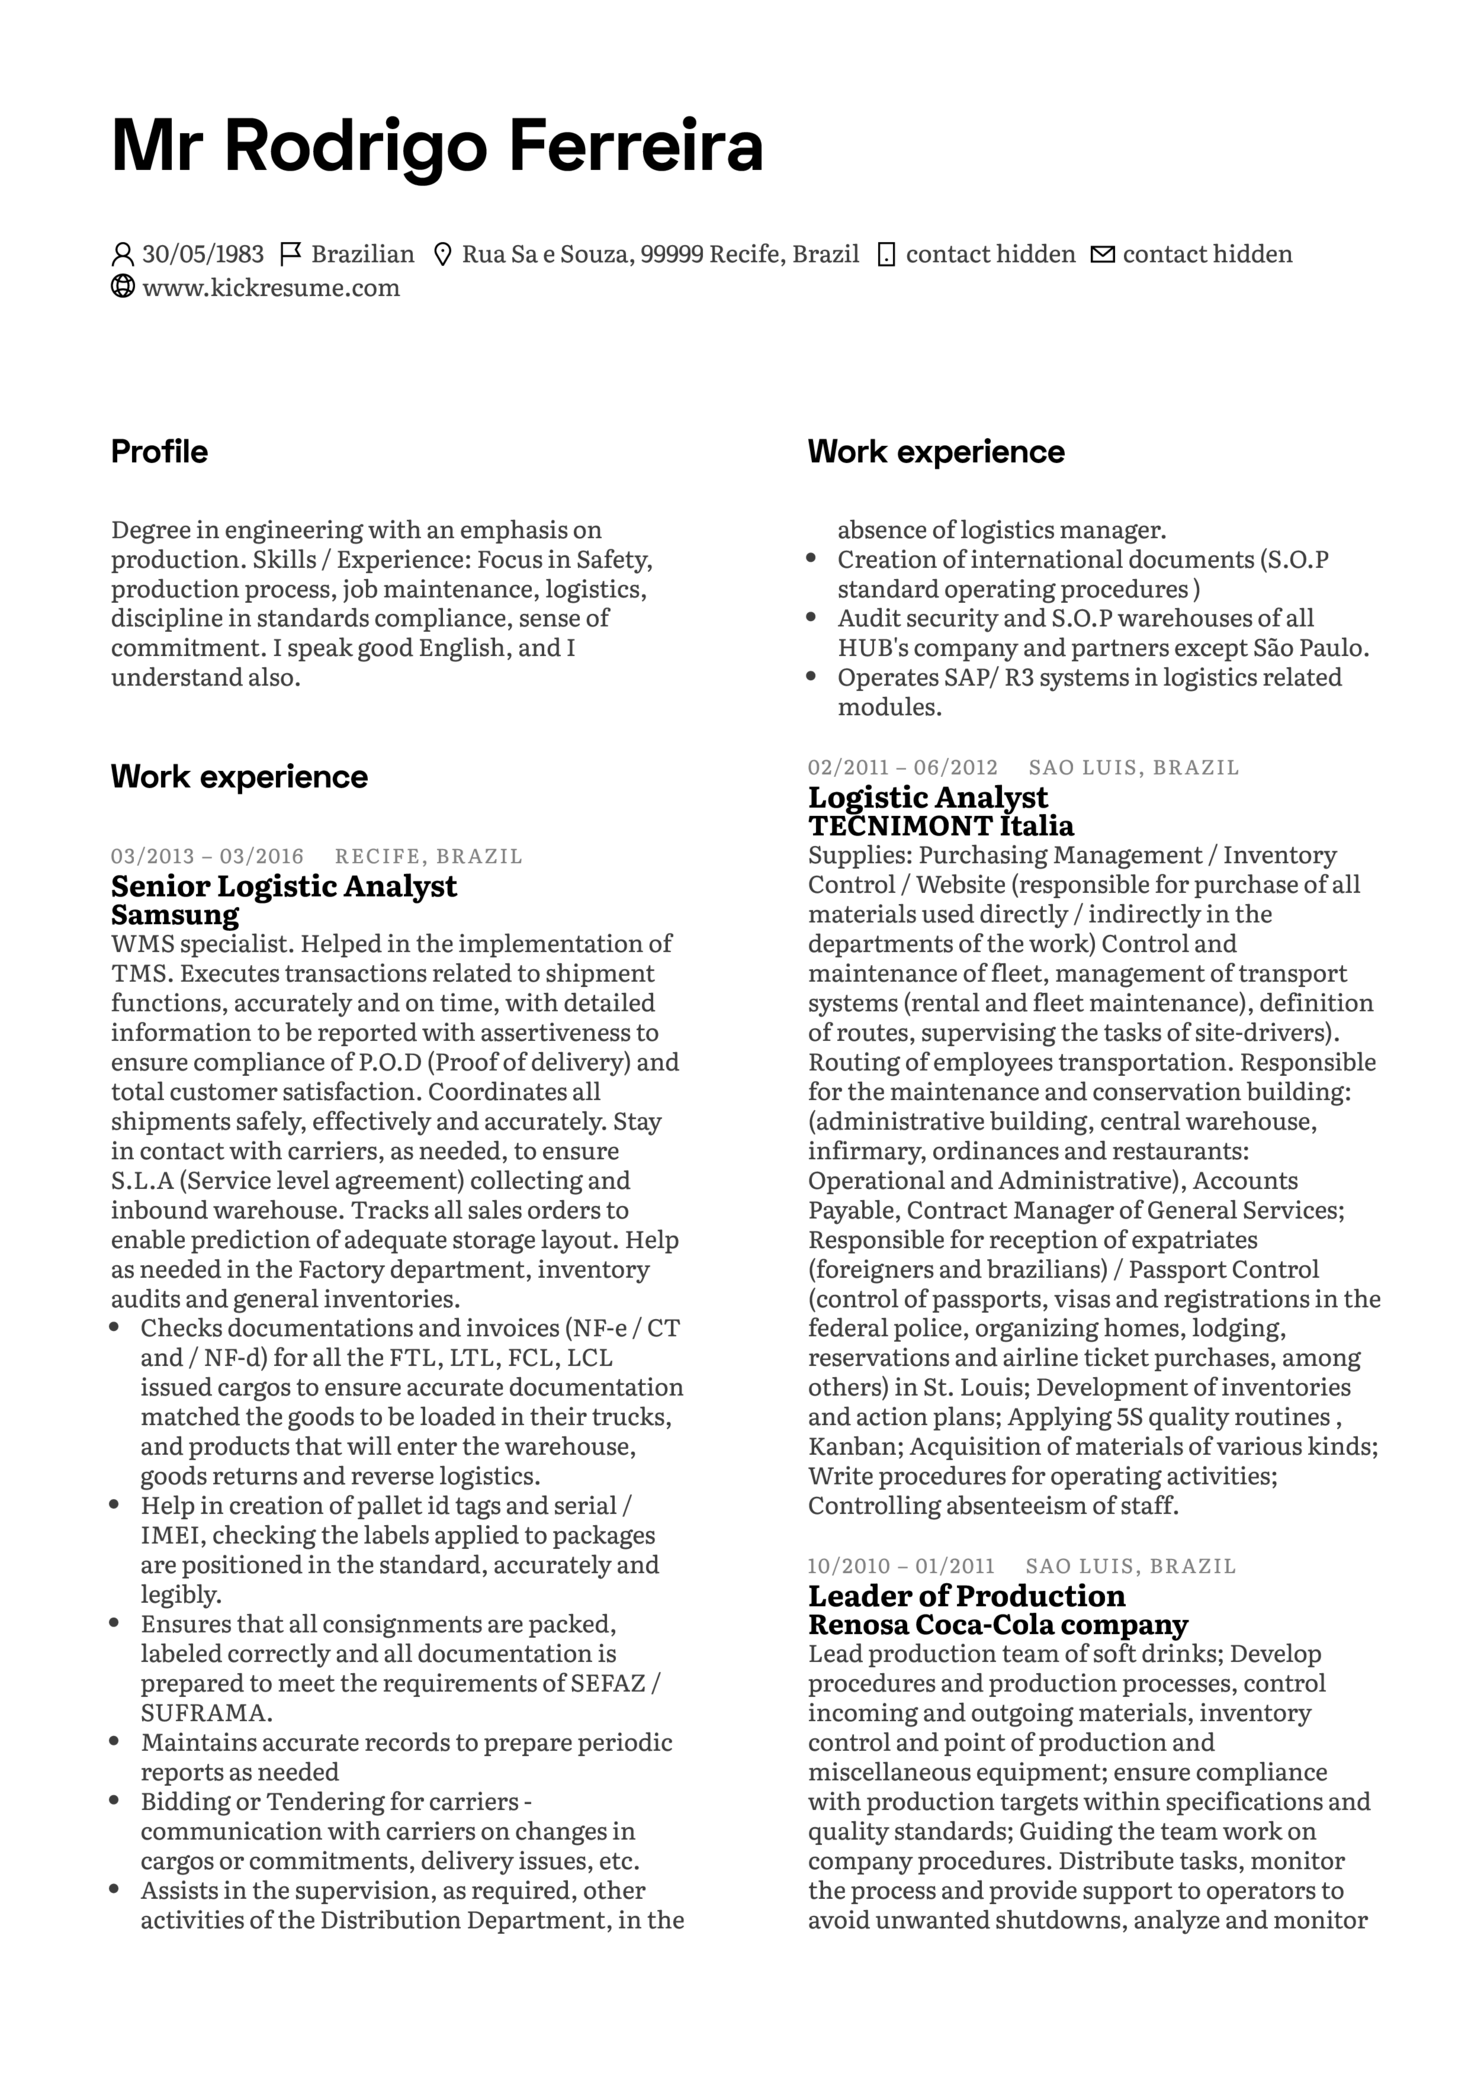 Leader of Production at Samsung Resume Sample (Part 1)